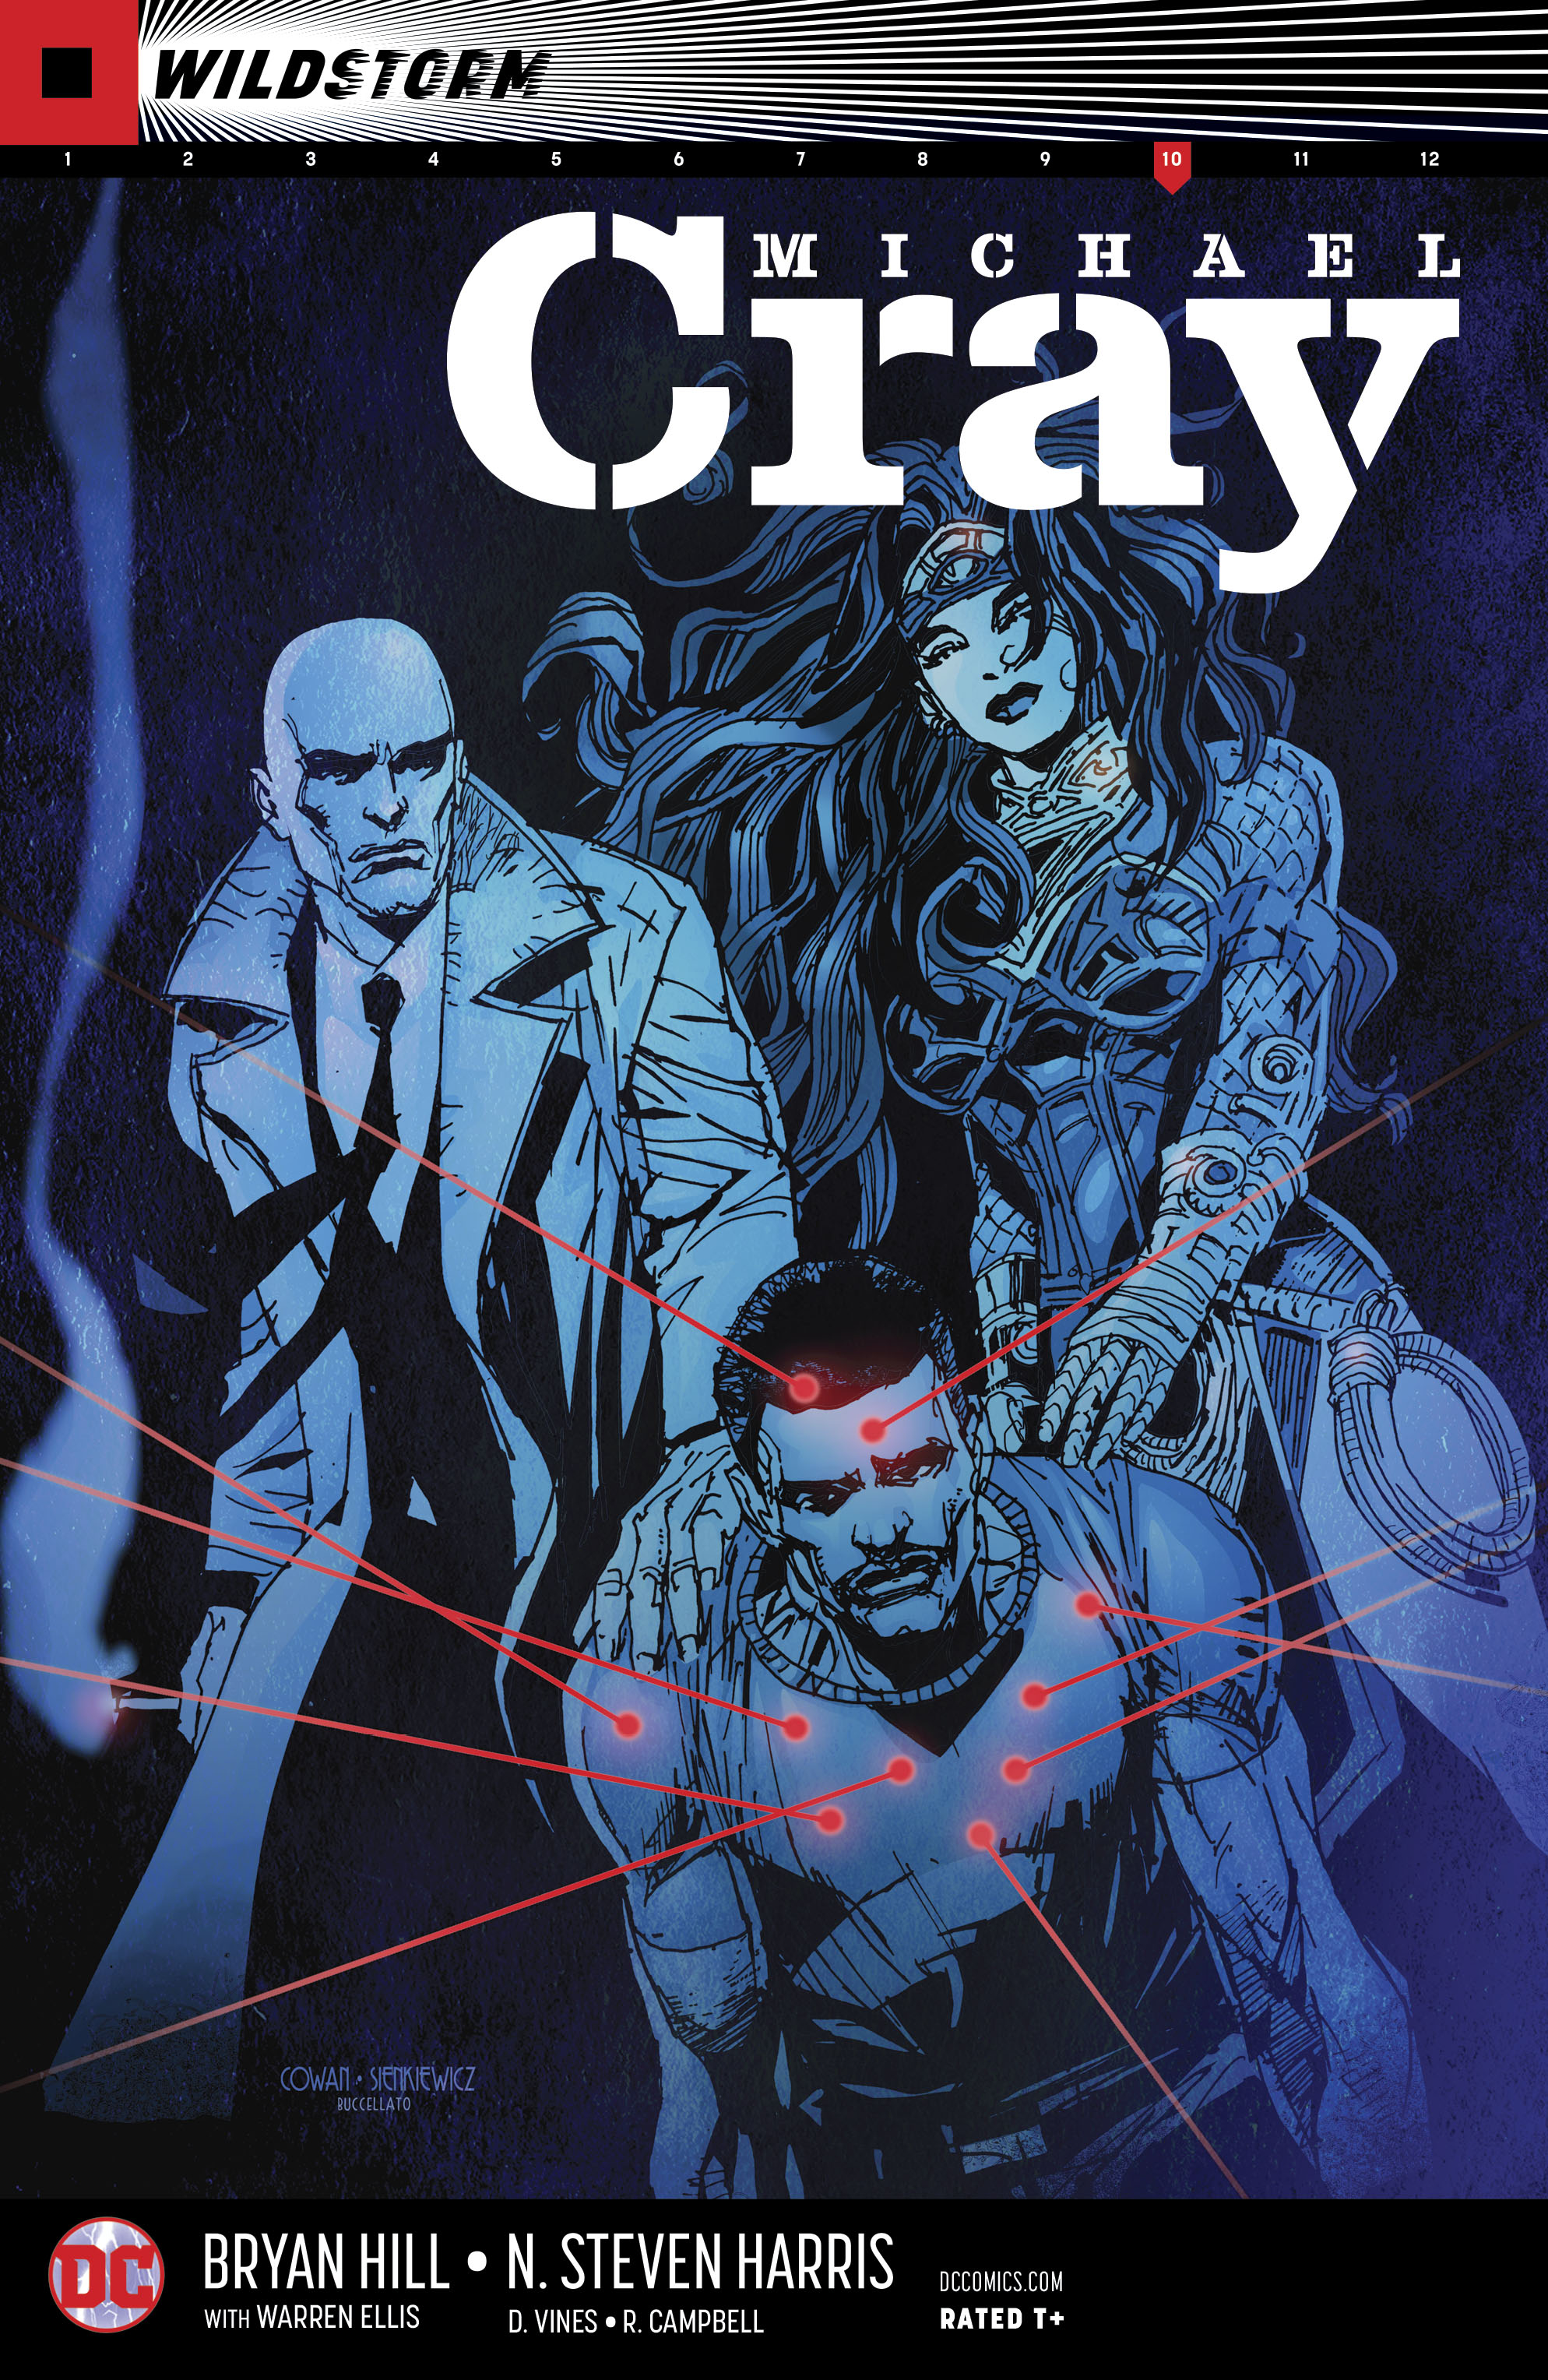 WILDSTORM MICHAEL CRAY #10